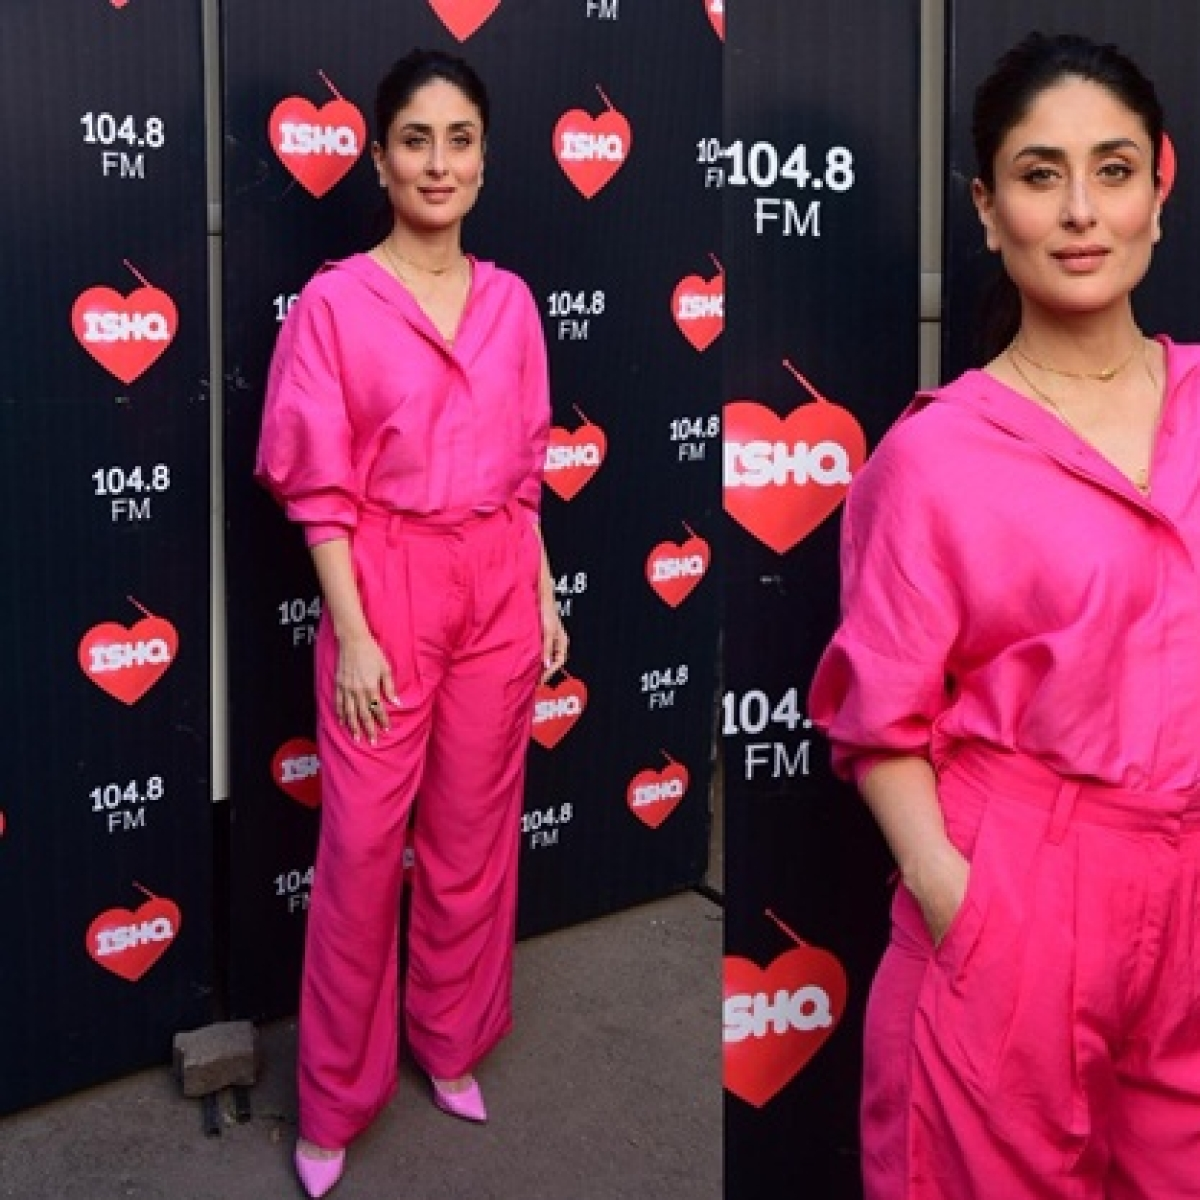 Kareena Kapoor Khan's monochrome ensemble is perfect for Valentine's Day date